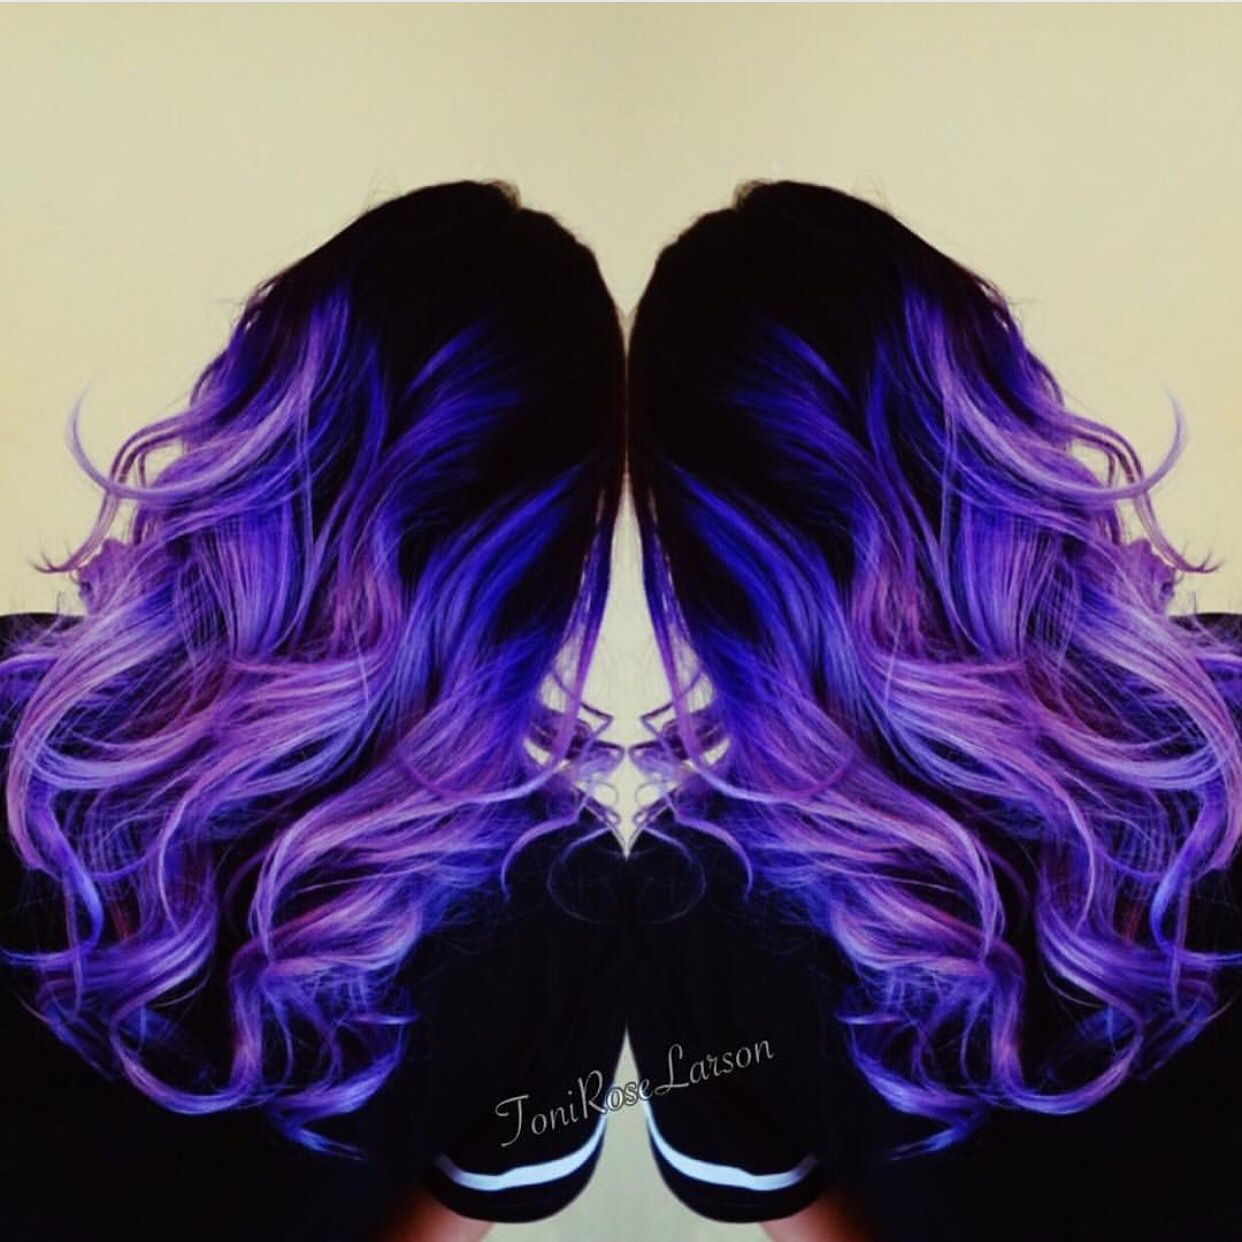 Violet hair color and purple too by toni rose larson mermaid hair